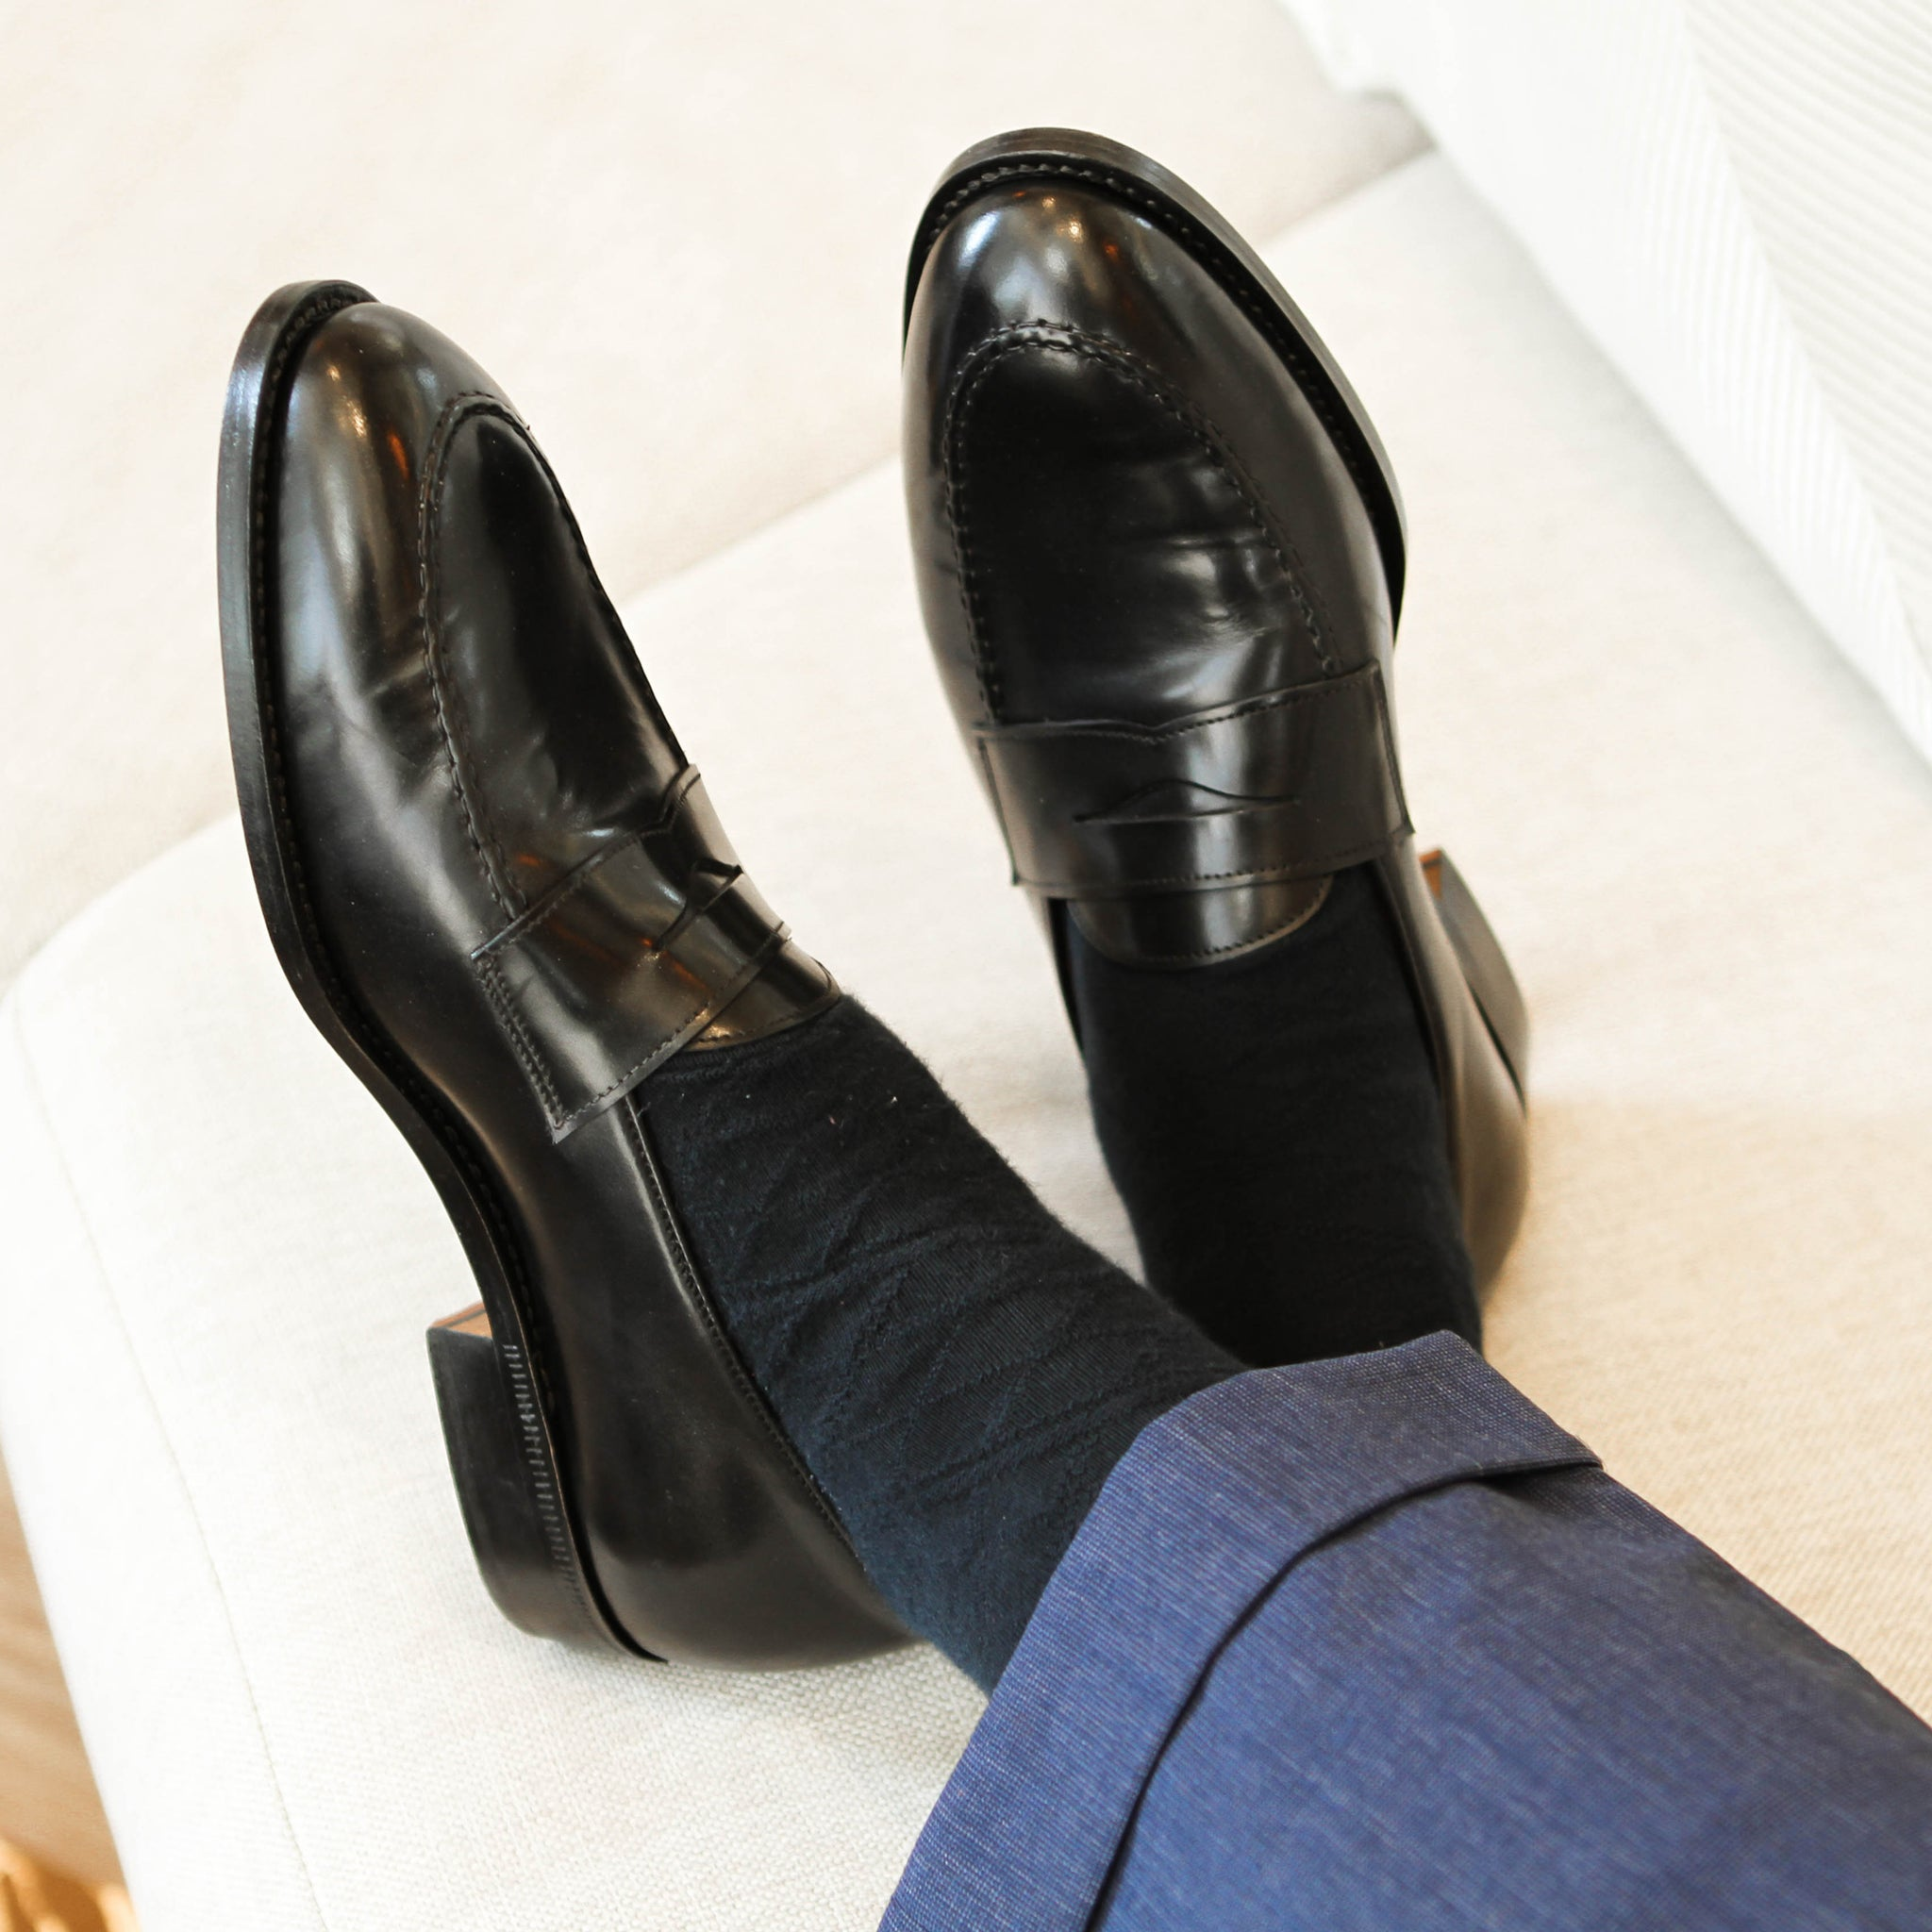 ML Penny Loafer - Black(JPN)